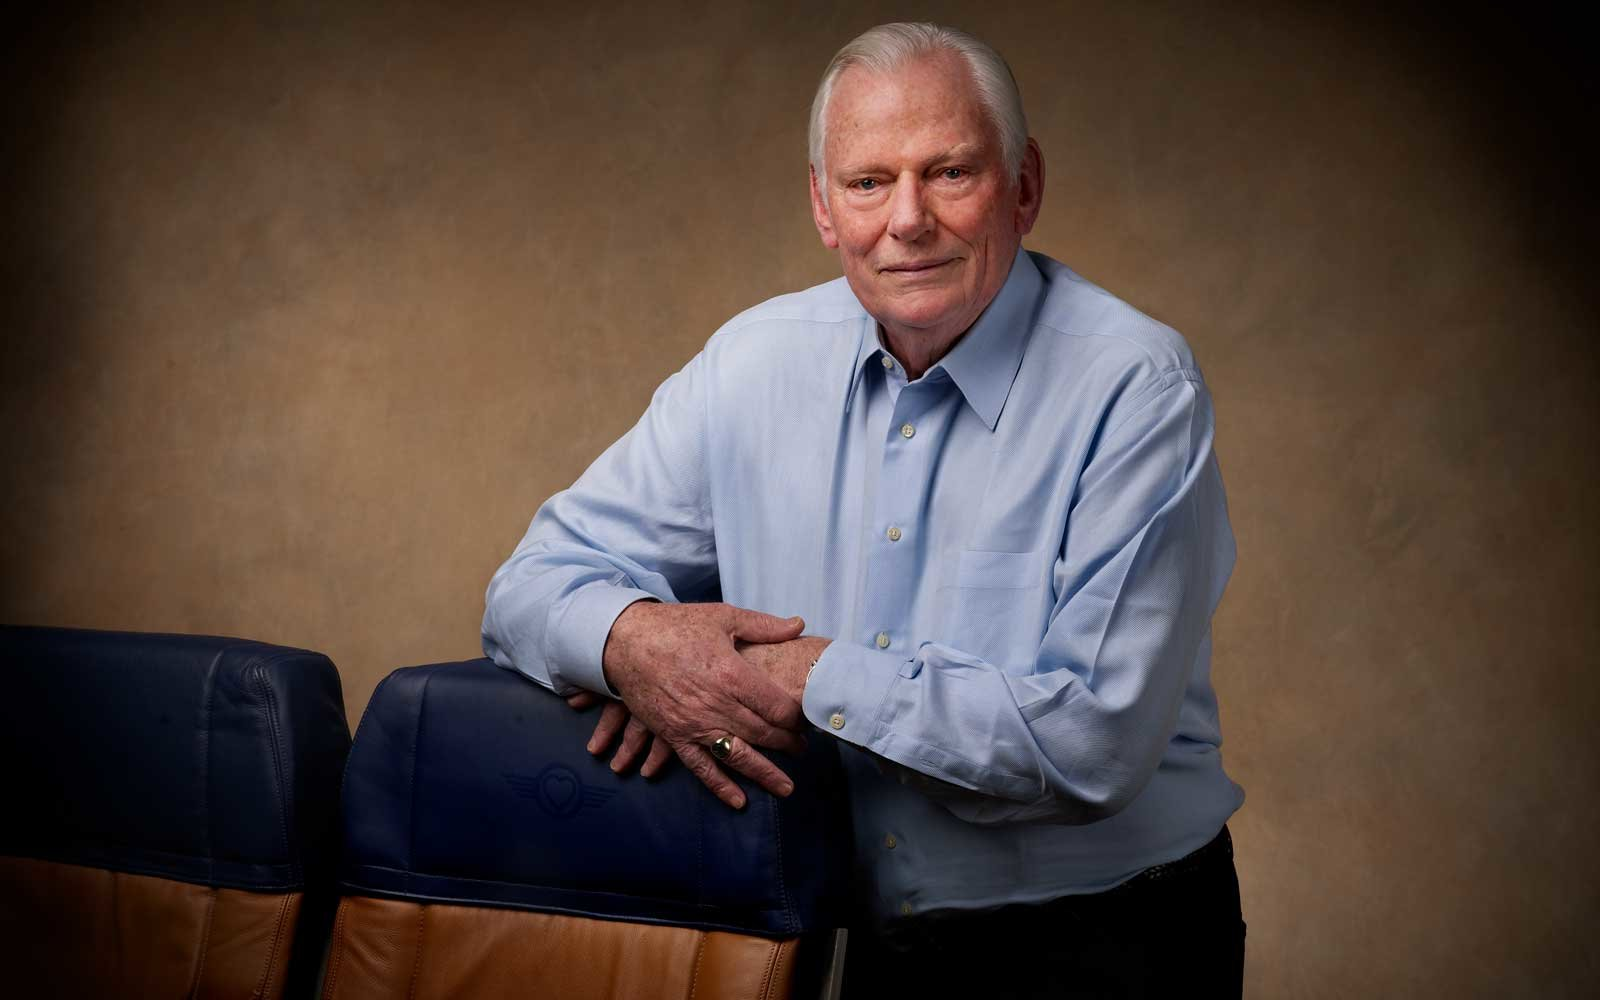 Herb Kelleher, founder of Southwest Airlines